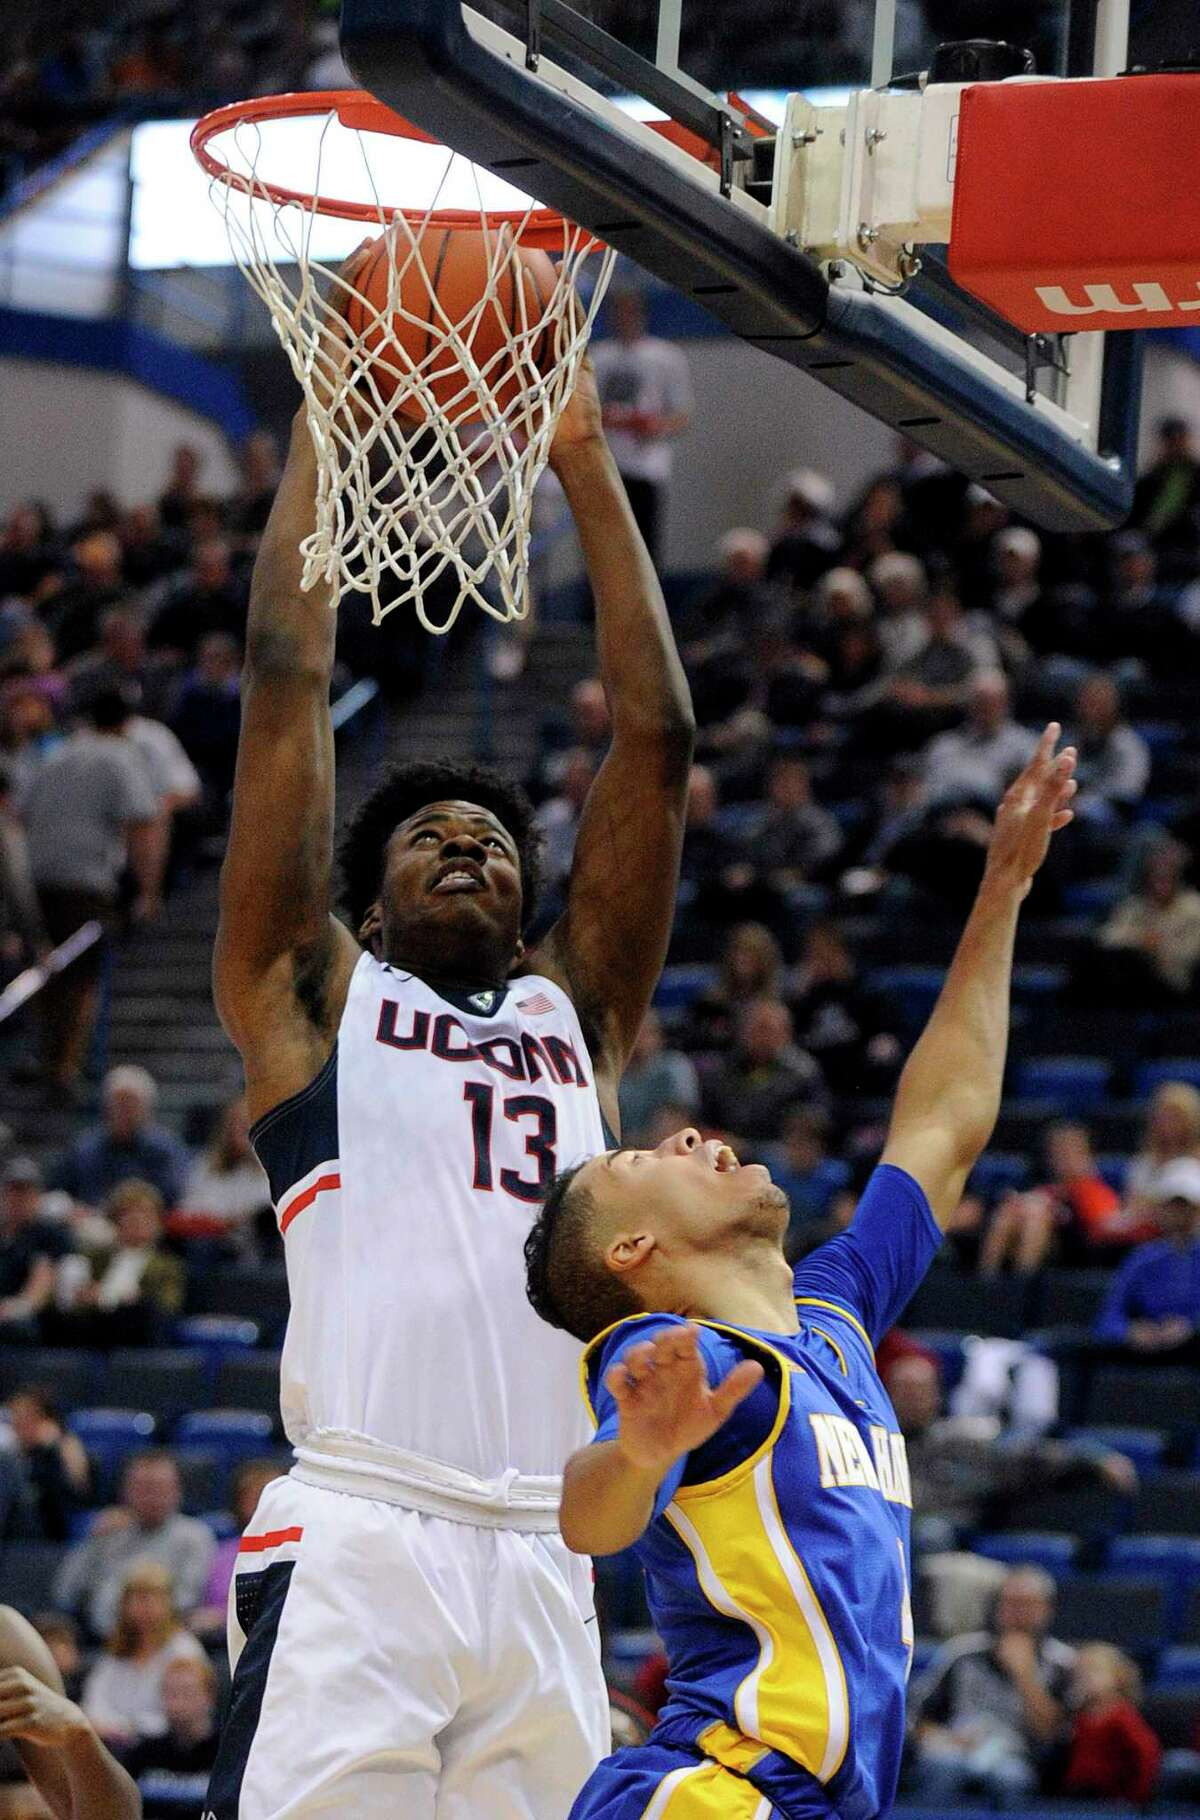 UConn's Steven Enoch (13) shoots over New Haven's Michael Bourke during the first half Saturday.